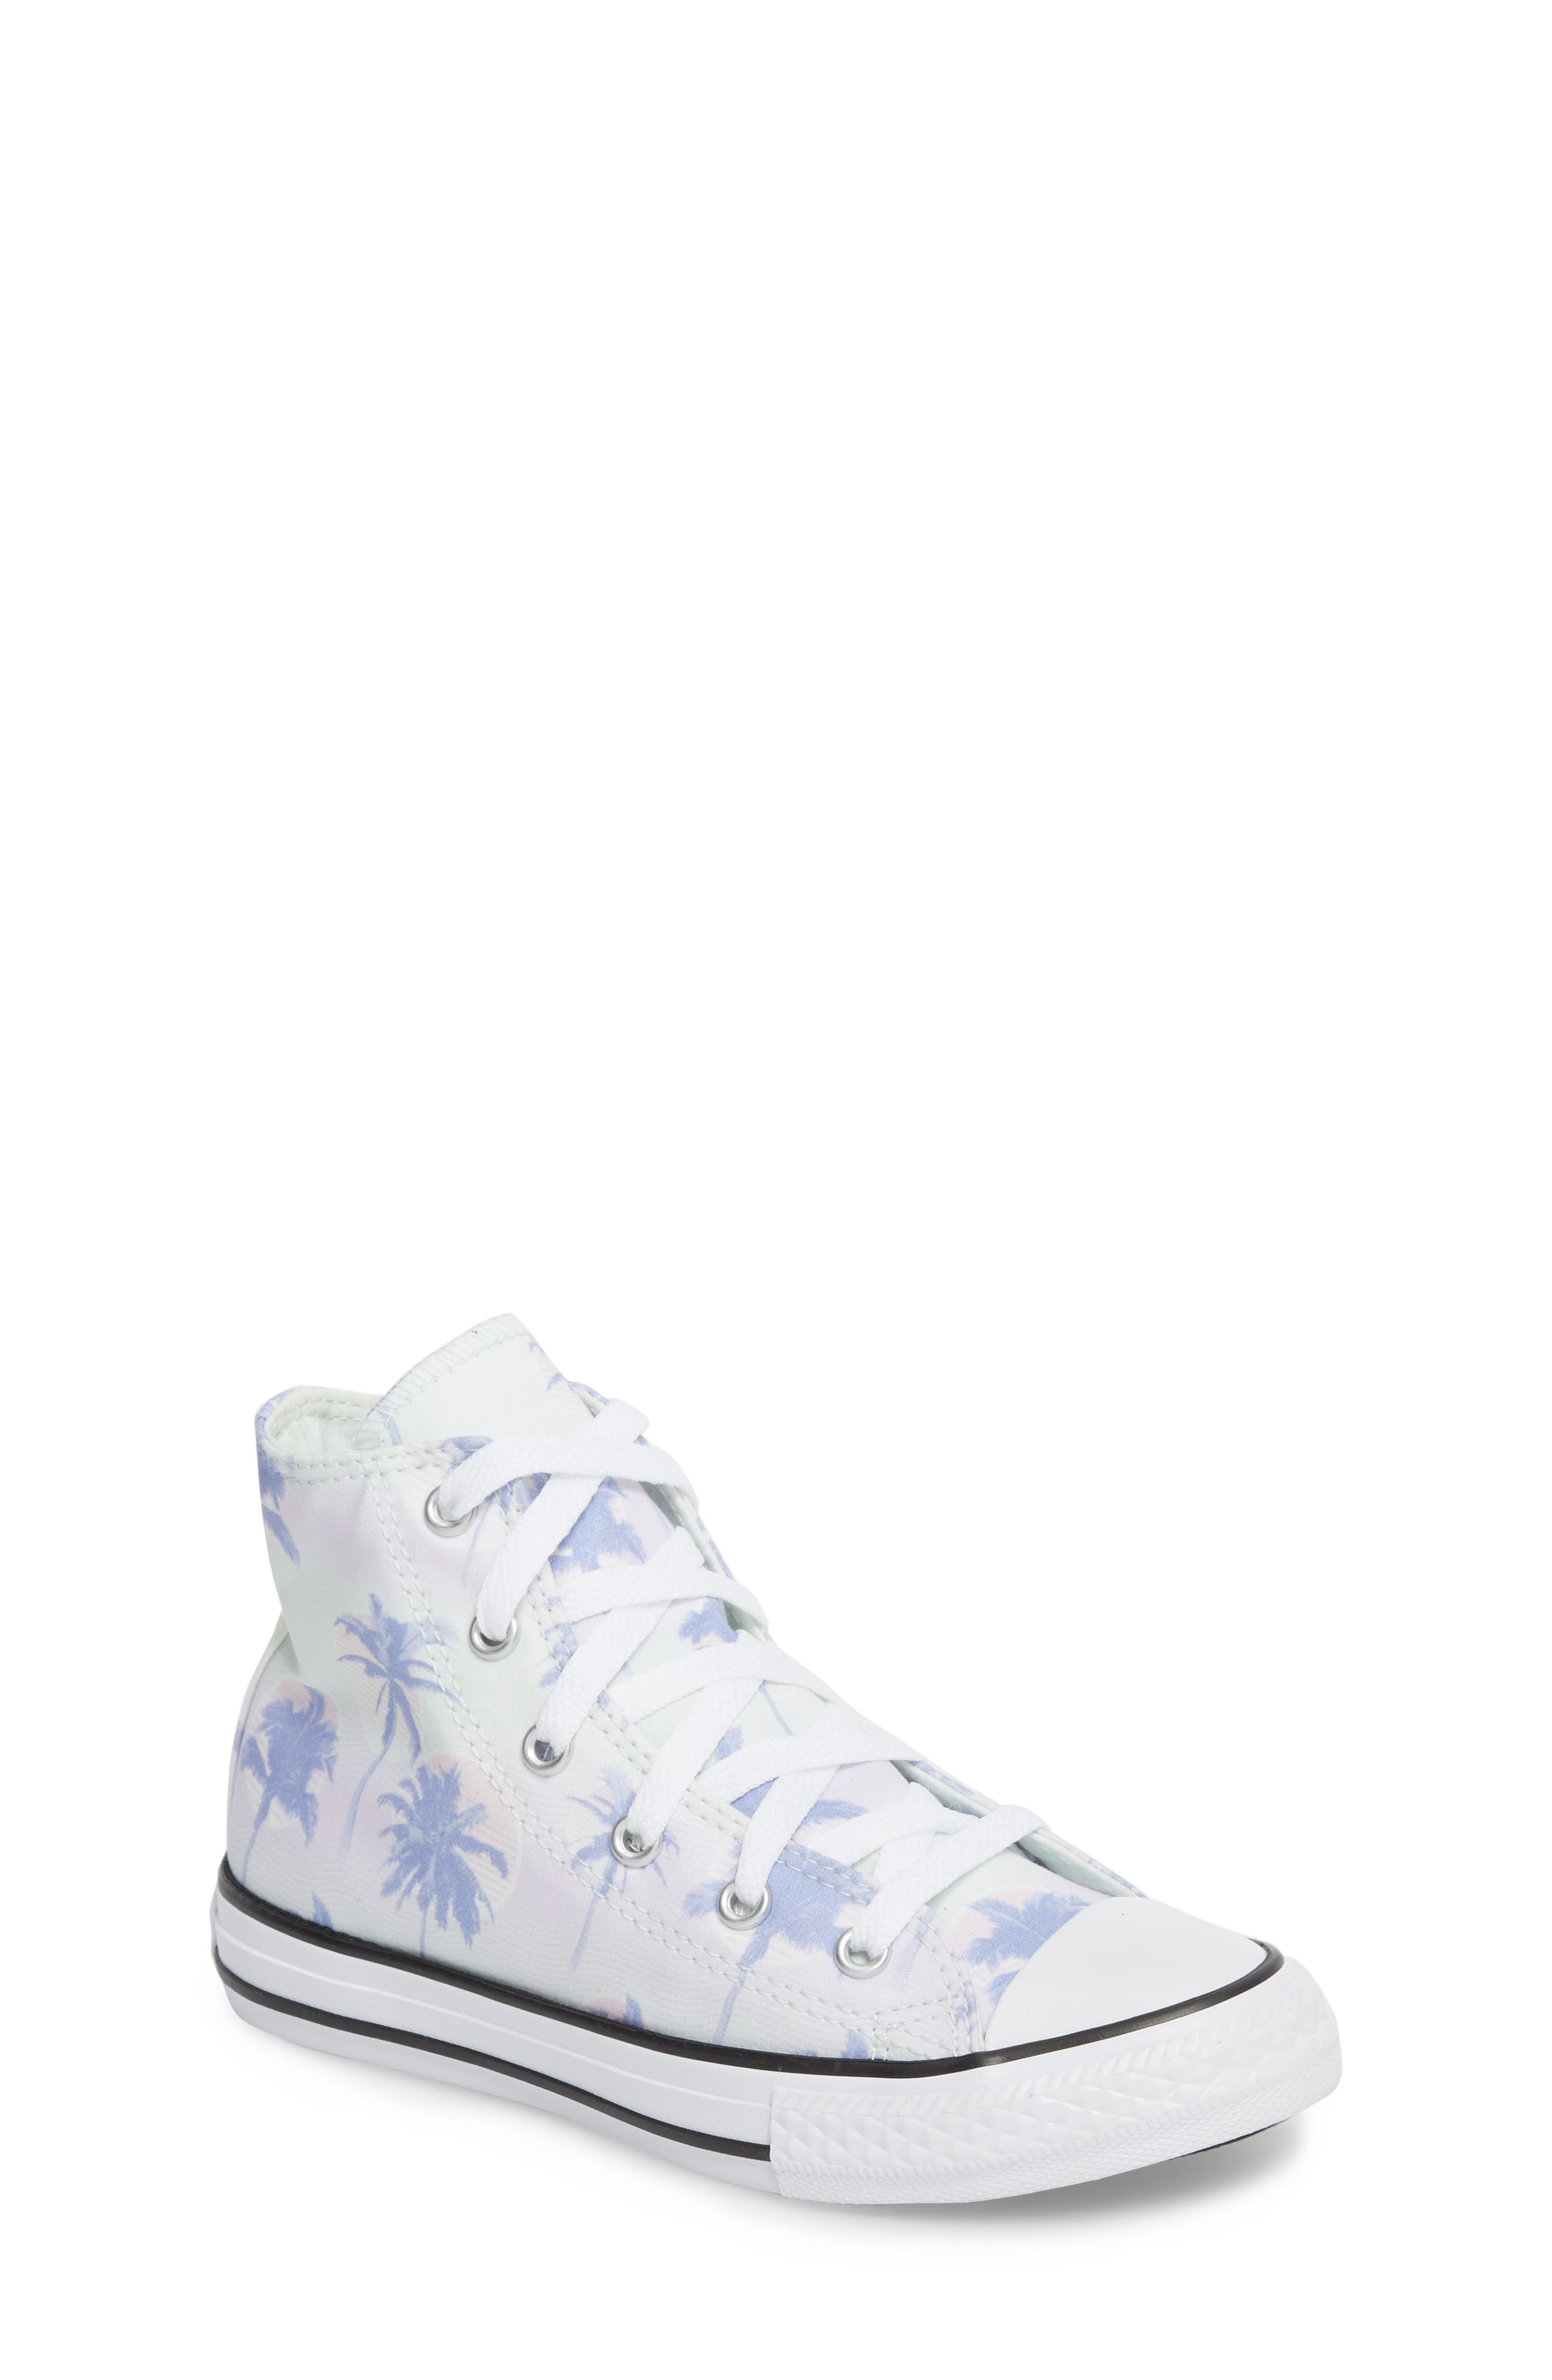 Chuck Taylor<sup>®</sup> All Star<sup>®</sup> Palm Tree High Top Sneaker,                             Main thumbnail 1, color,                             507